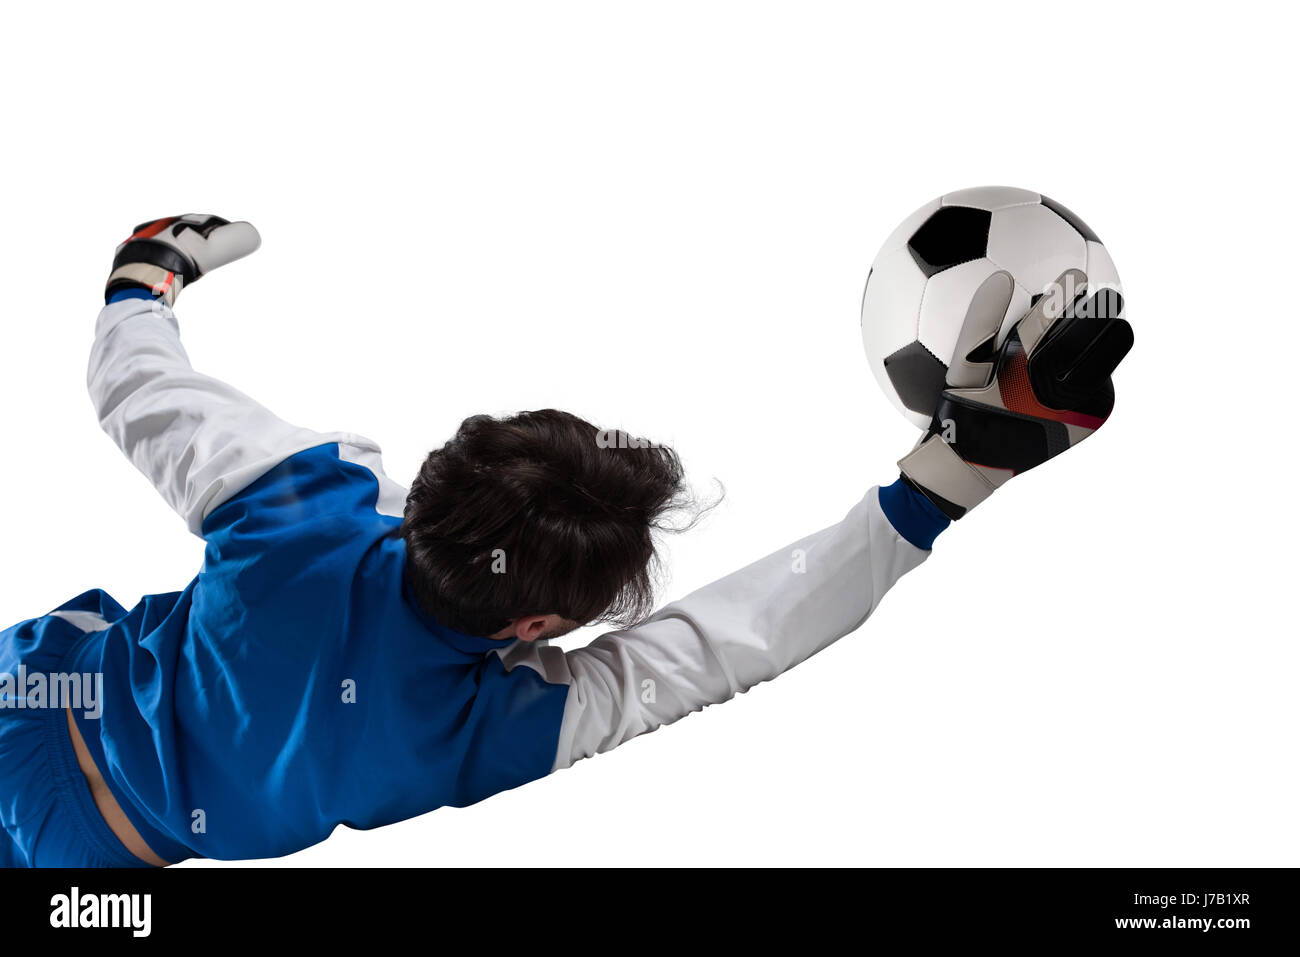 Goalkeeper catches the ball in the stadium - Stock Image